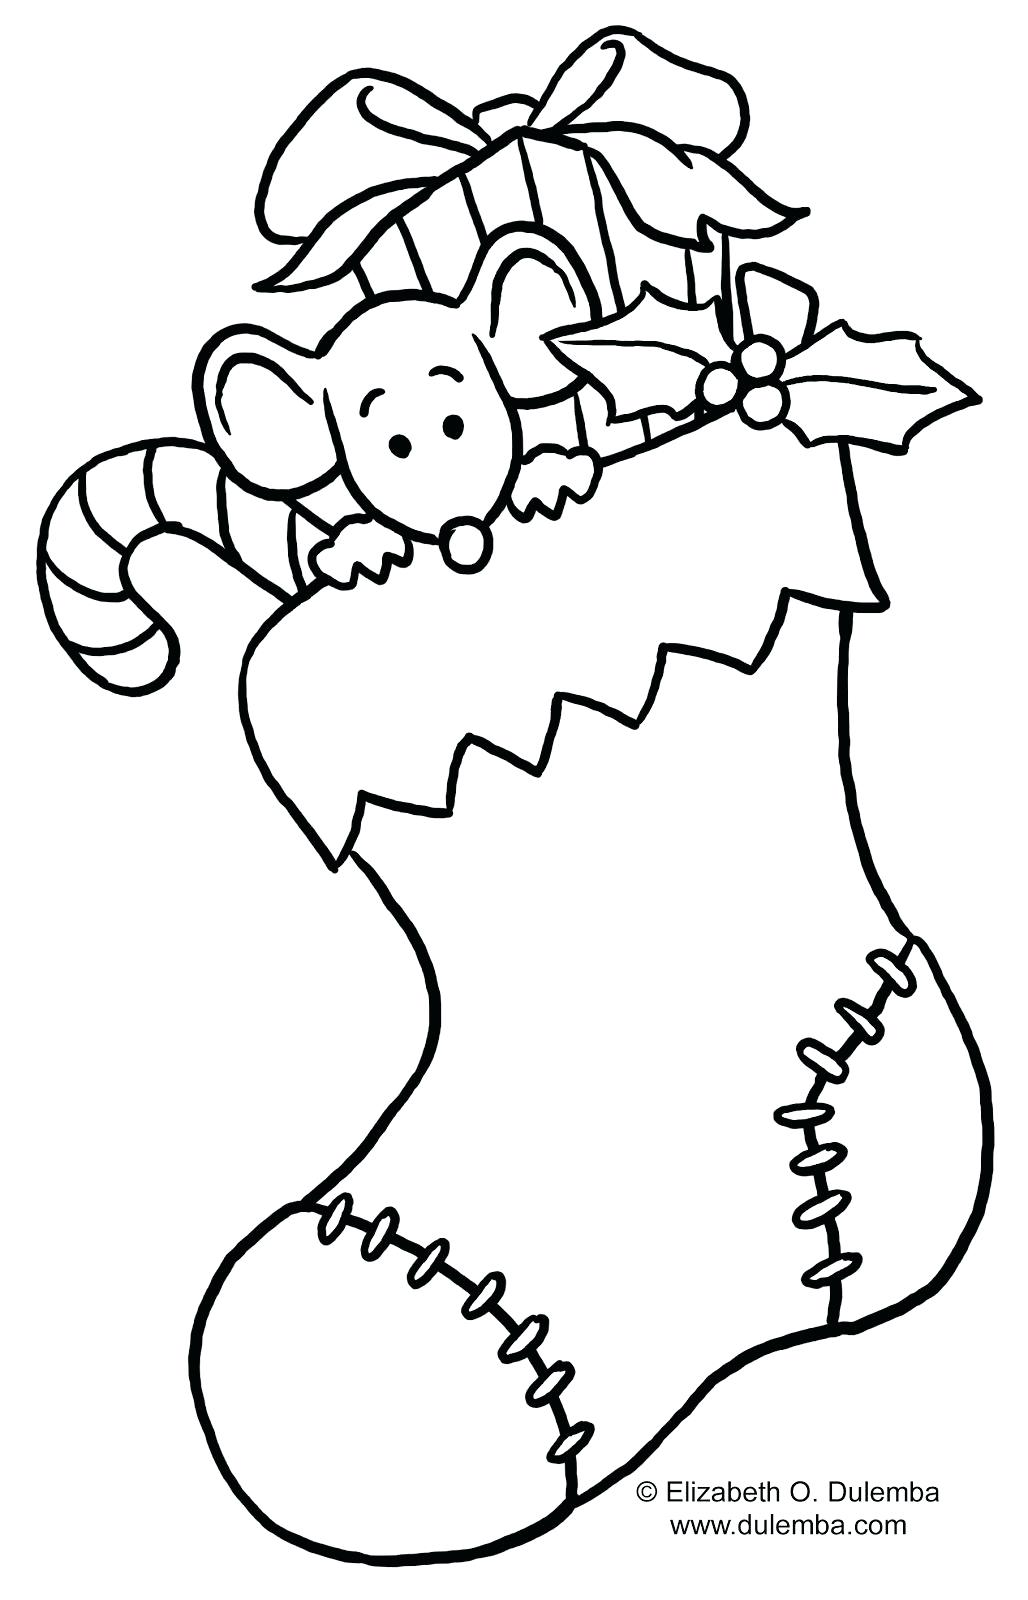 Santa Face Coloring Sheet With Printable Pattern Pages Online